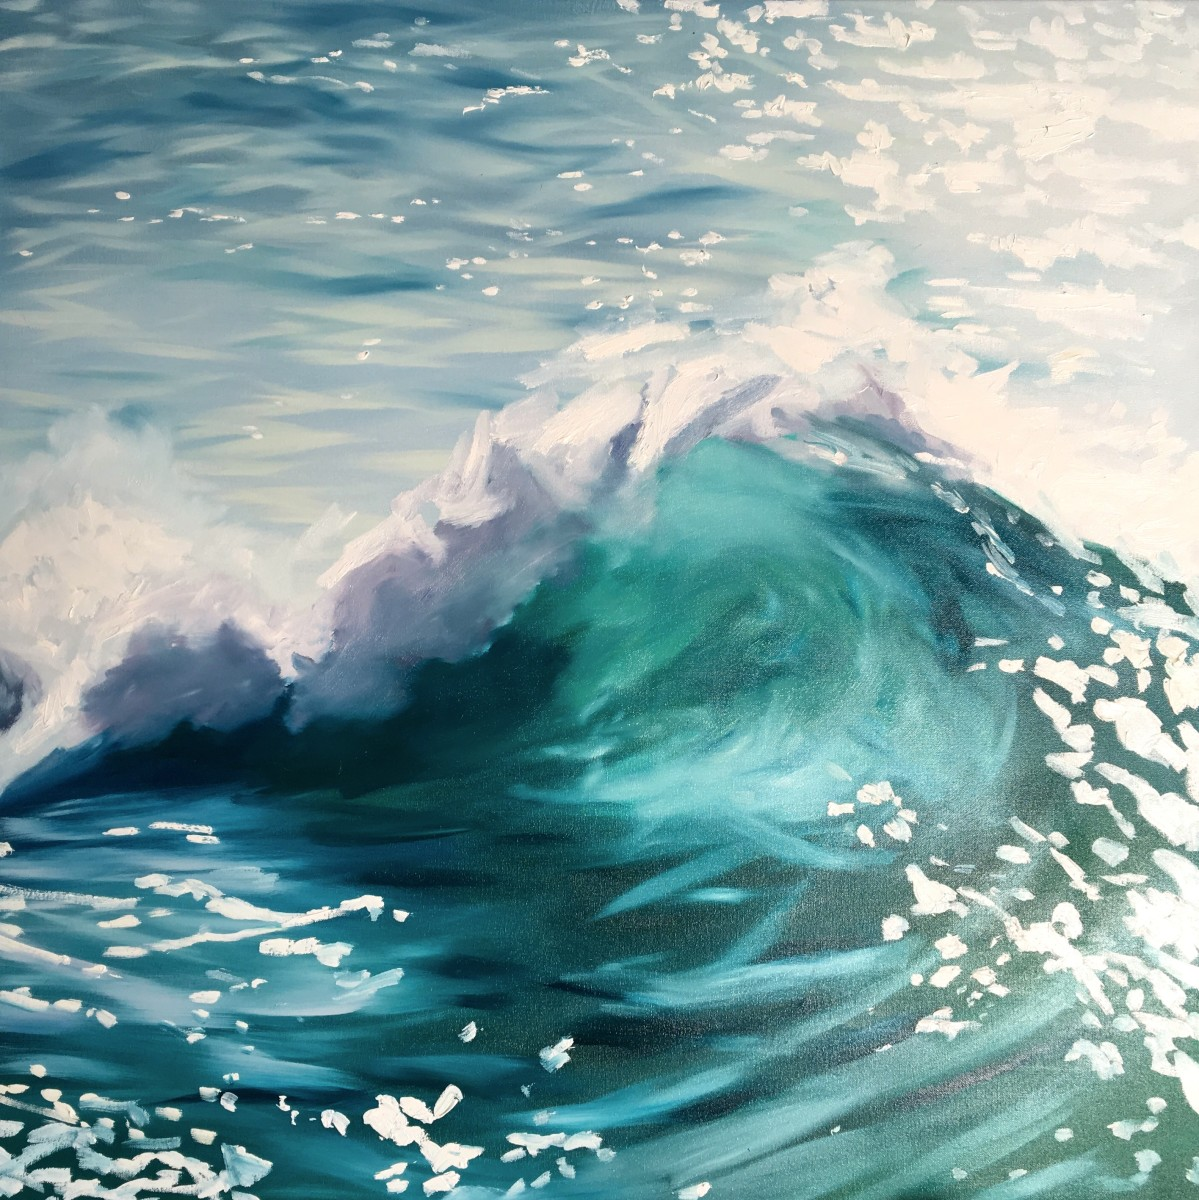 Wave 1 by Meredith Howse